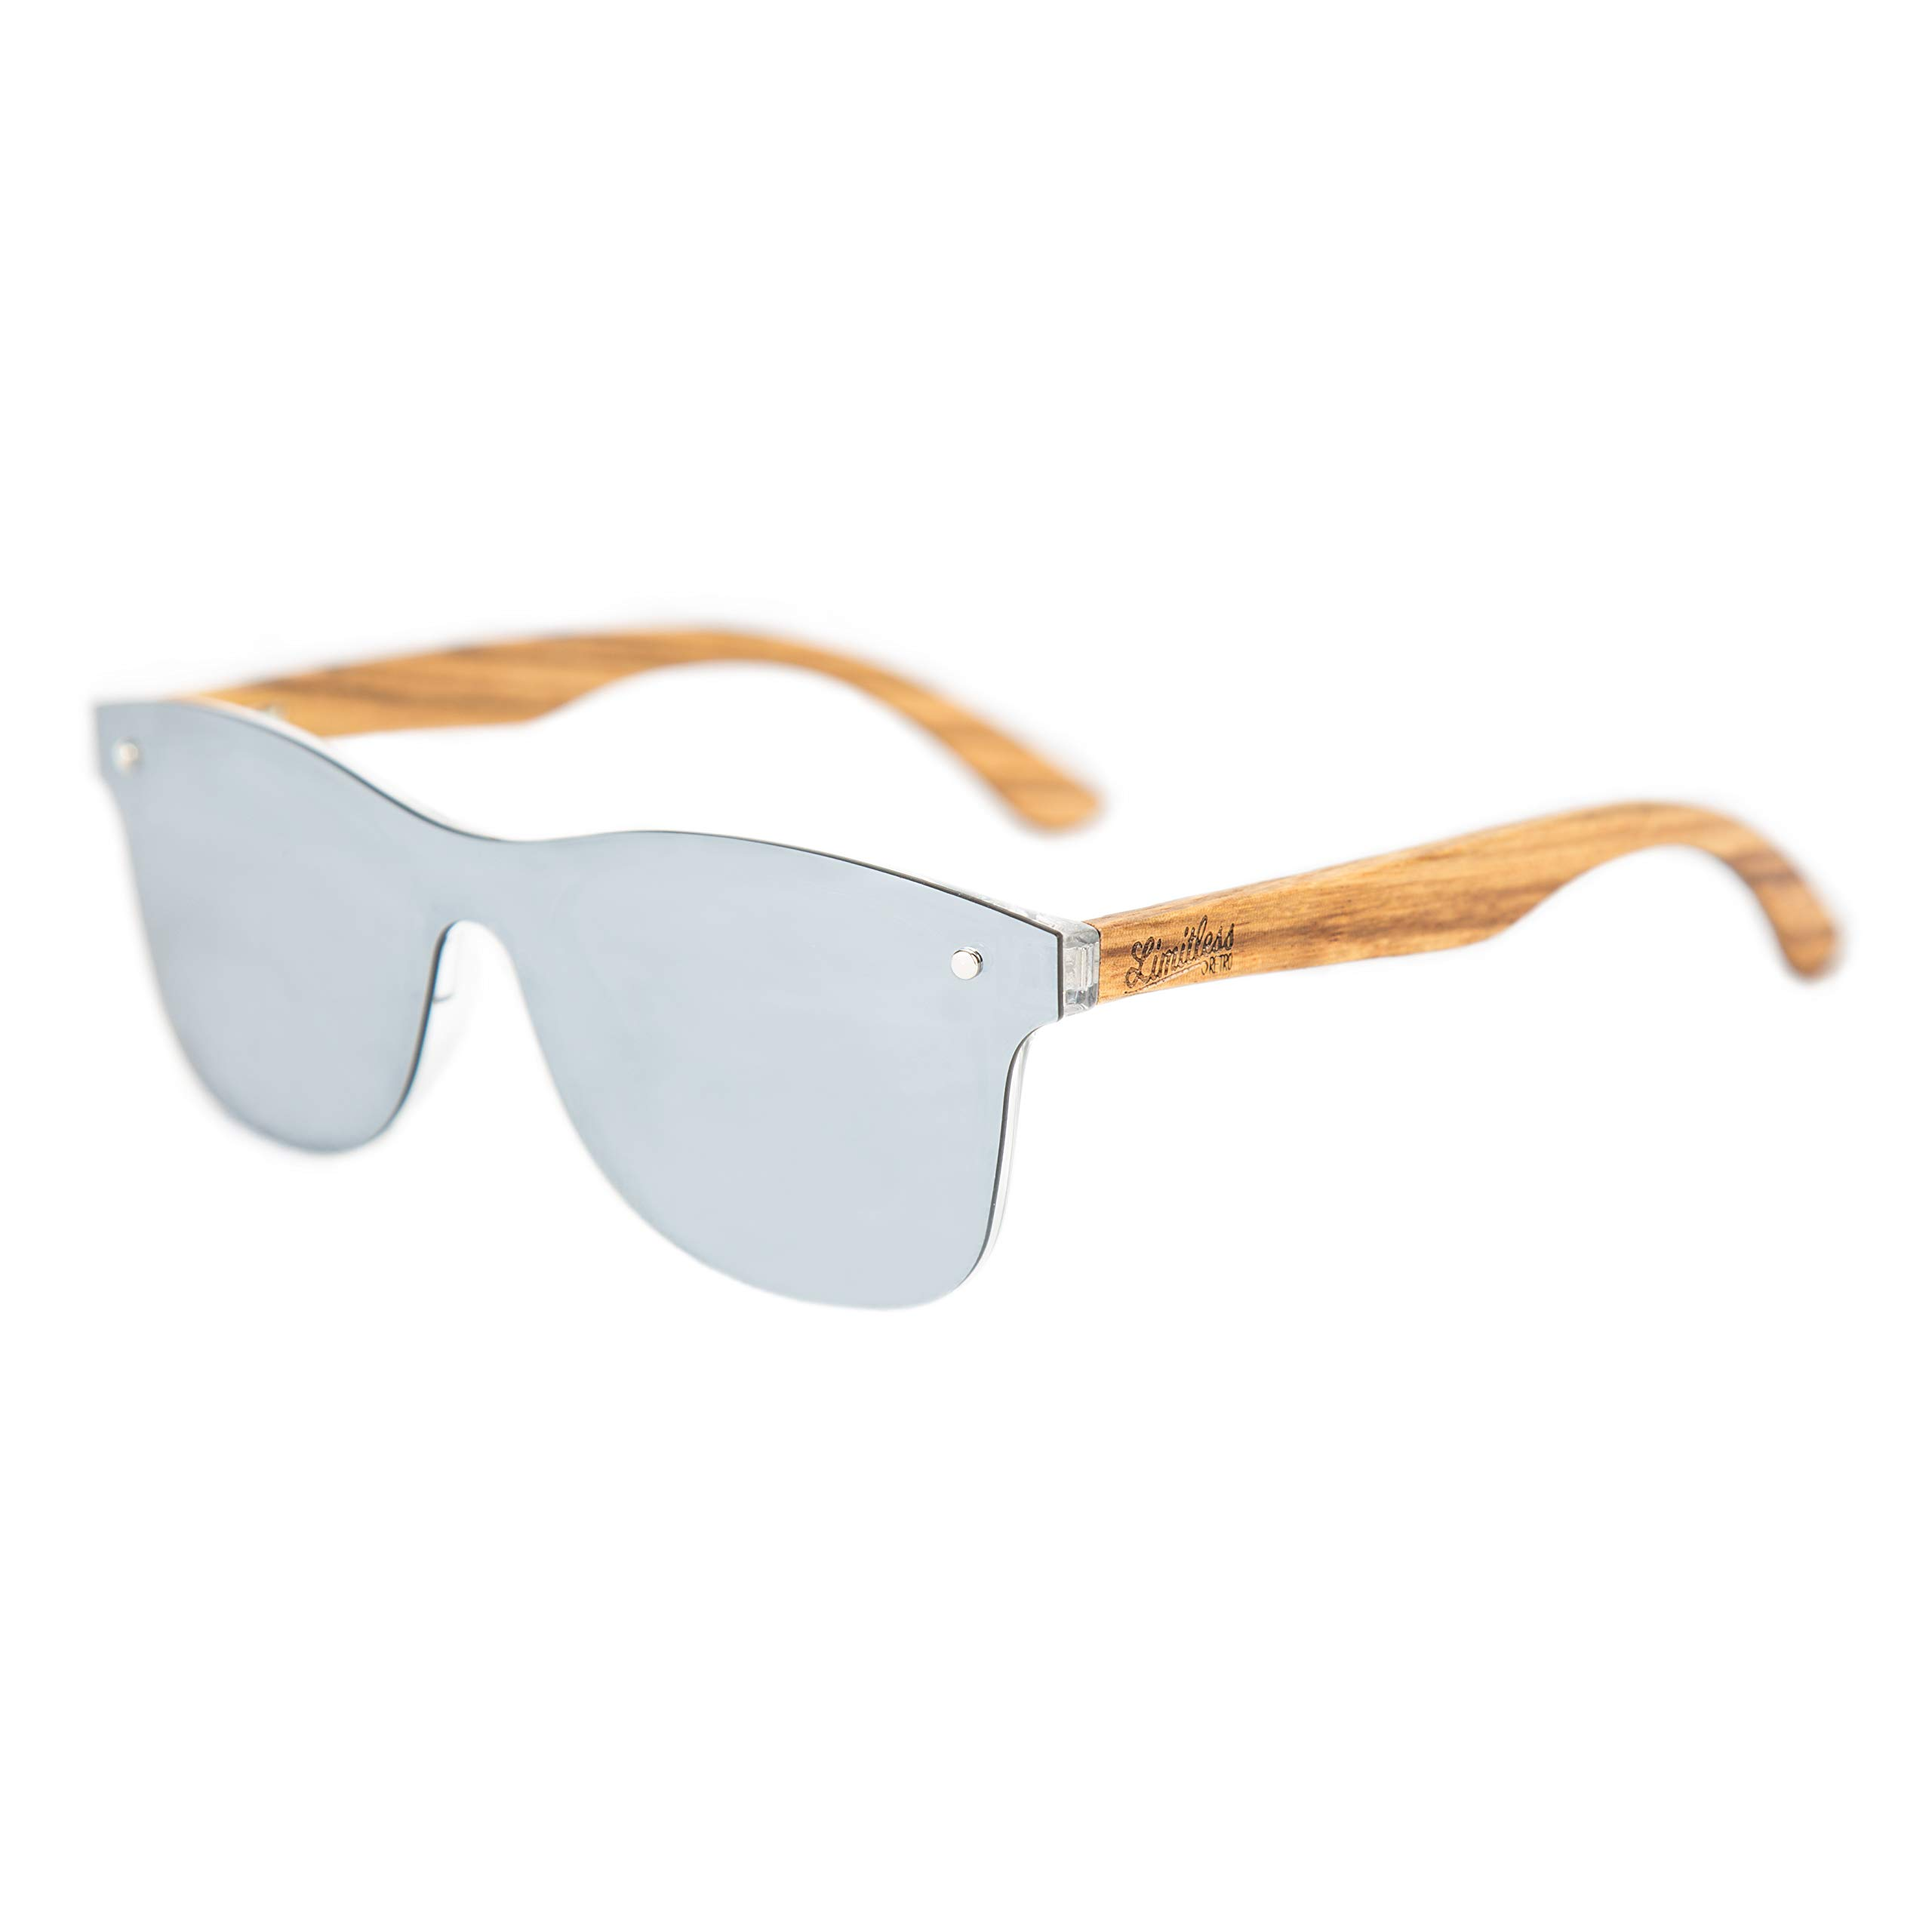 Limitless Wooden Sunglasses, Wooden Retro Frameless Sunglasses, Vintage Mirror UV400 Polarized Rimless Eyewear (Retro Silver, Silver)